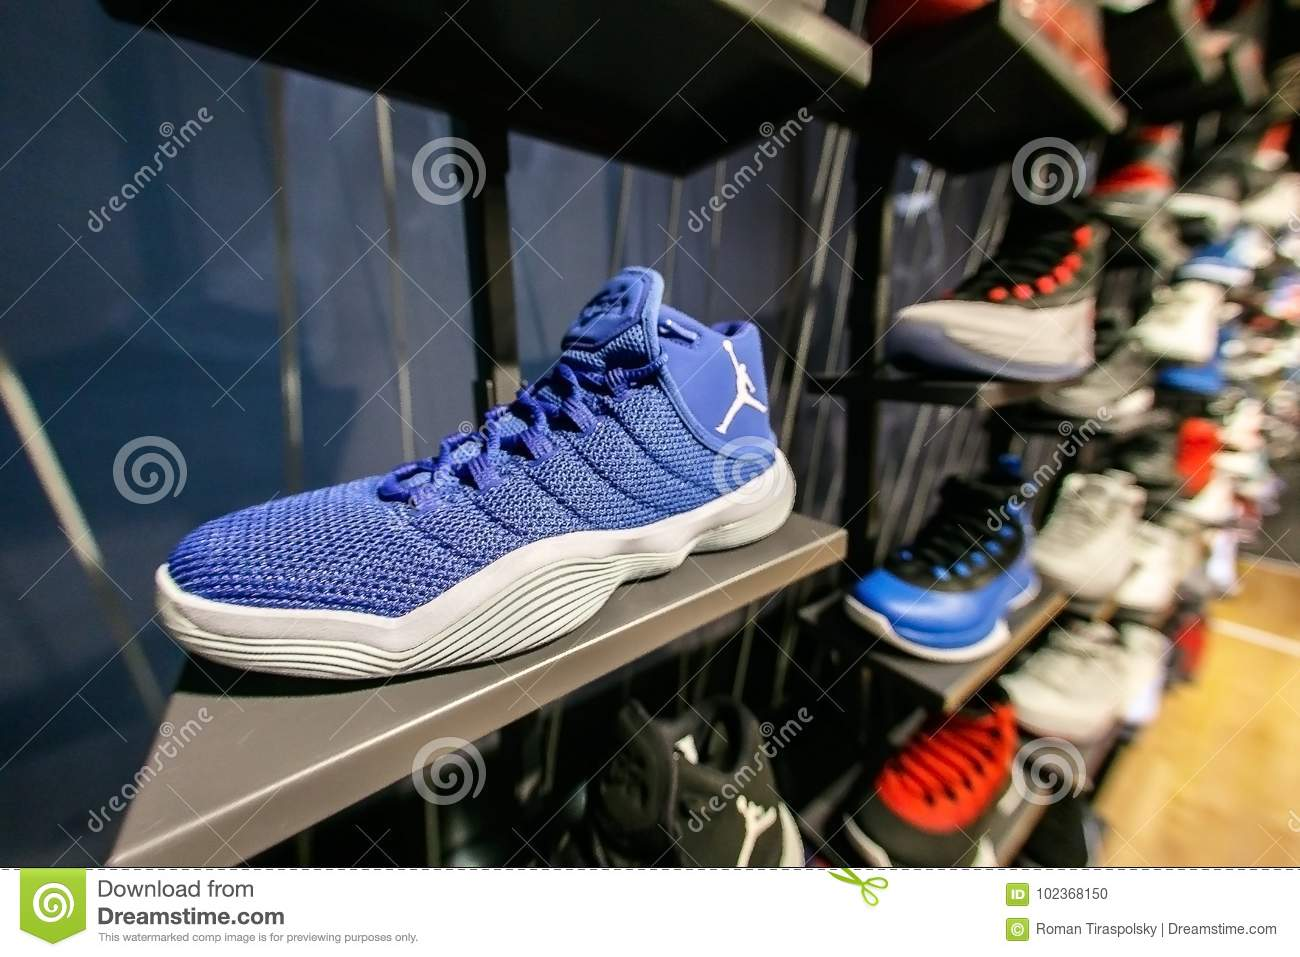 new product 60b44 f15ce New York, October 20, 2017  Assortment of Air Jordan sneakers on sale in  the NBA store in Manhattan.